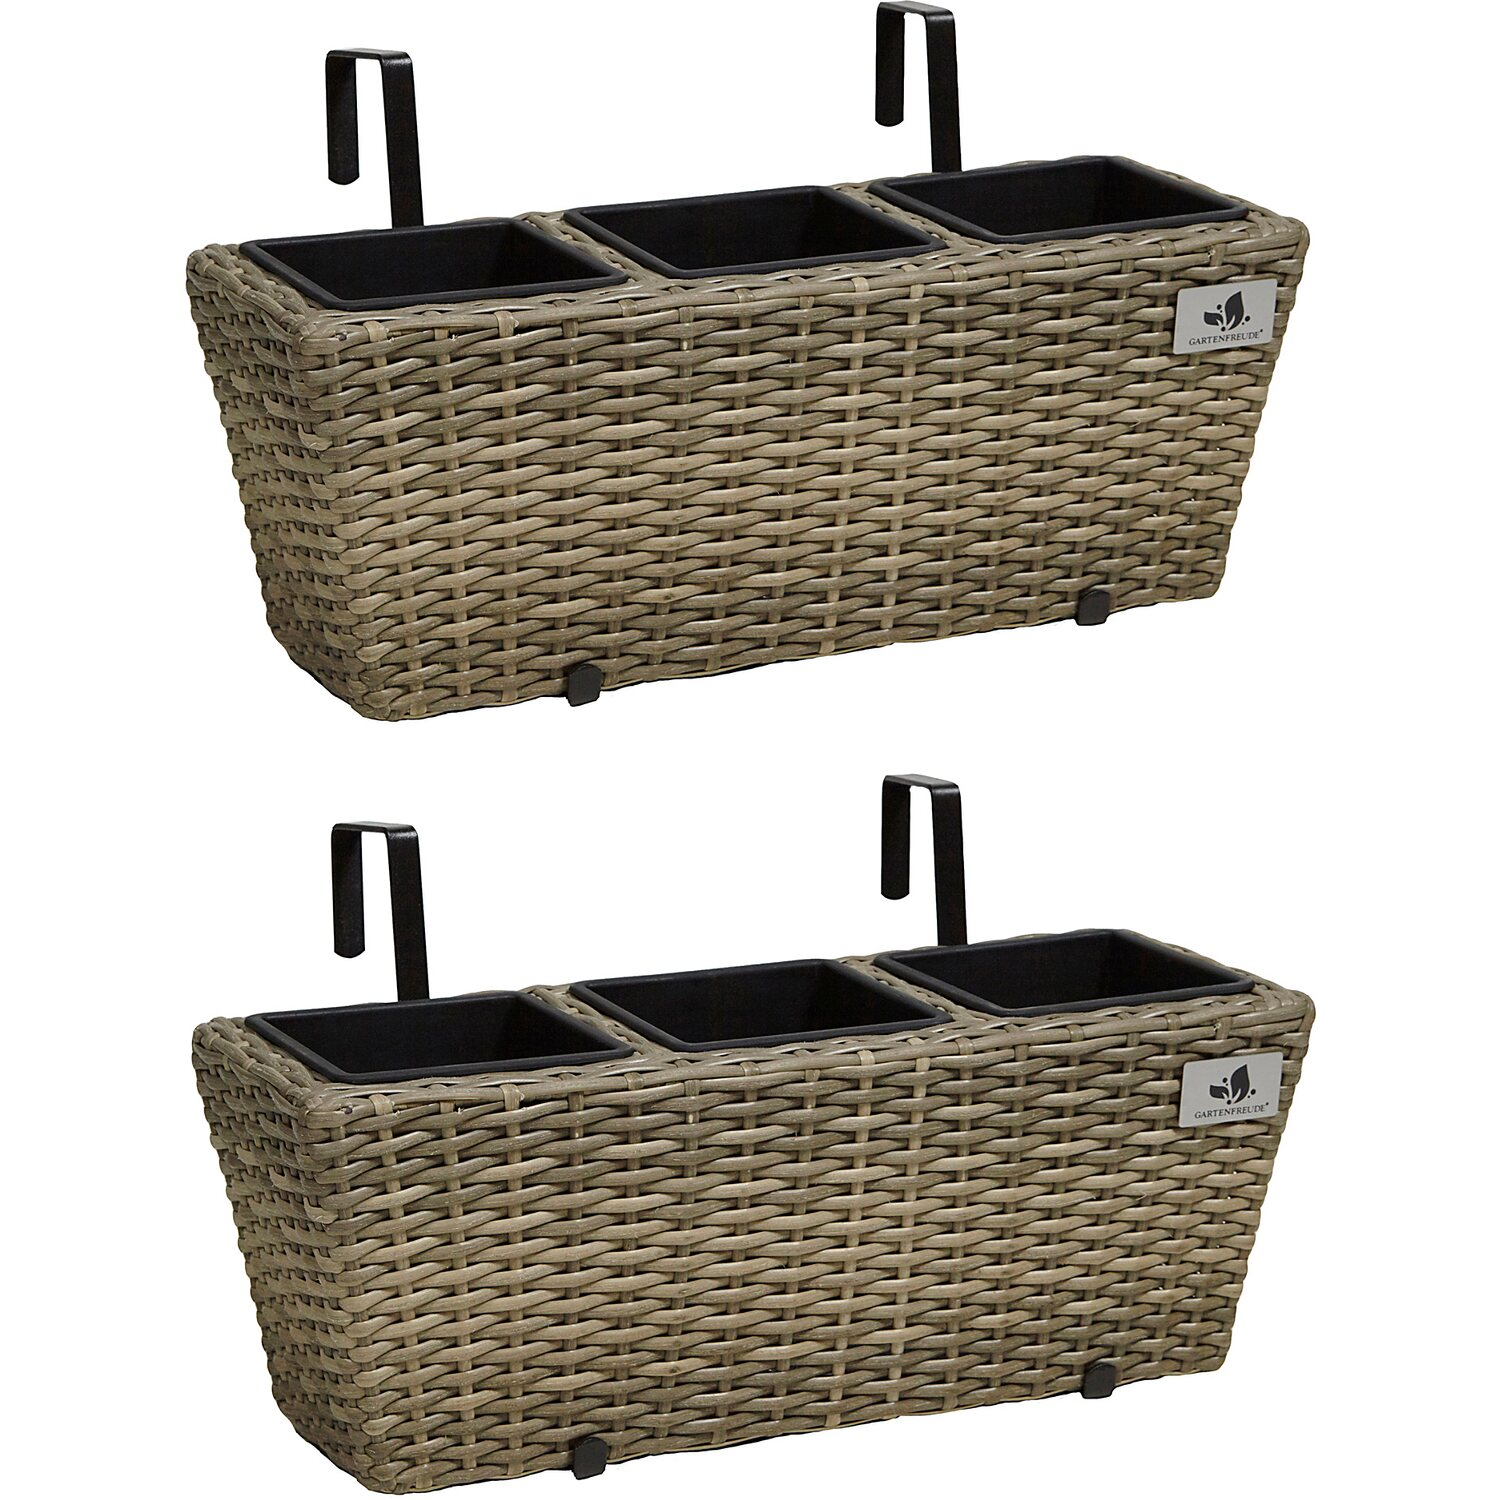 gartenfreude balkonkasten polyrattan 47 cm x 17 cm naturfarben 2 st ck kaufen bei obi. Black Bedroom Furniture Sets. Home Design Ideas